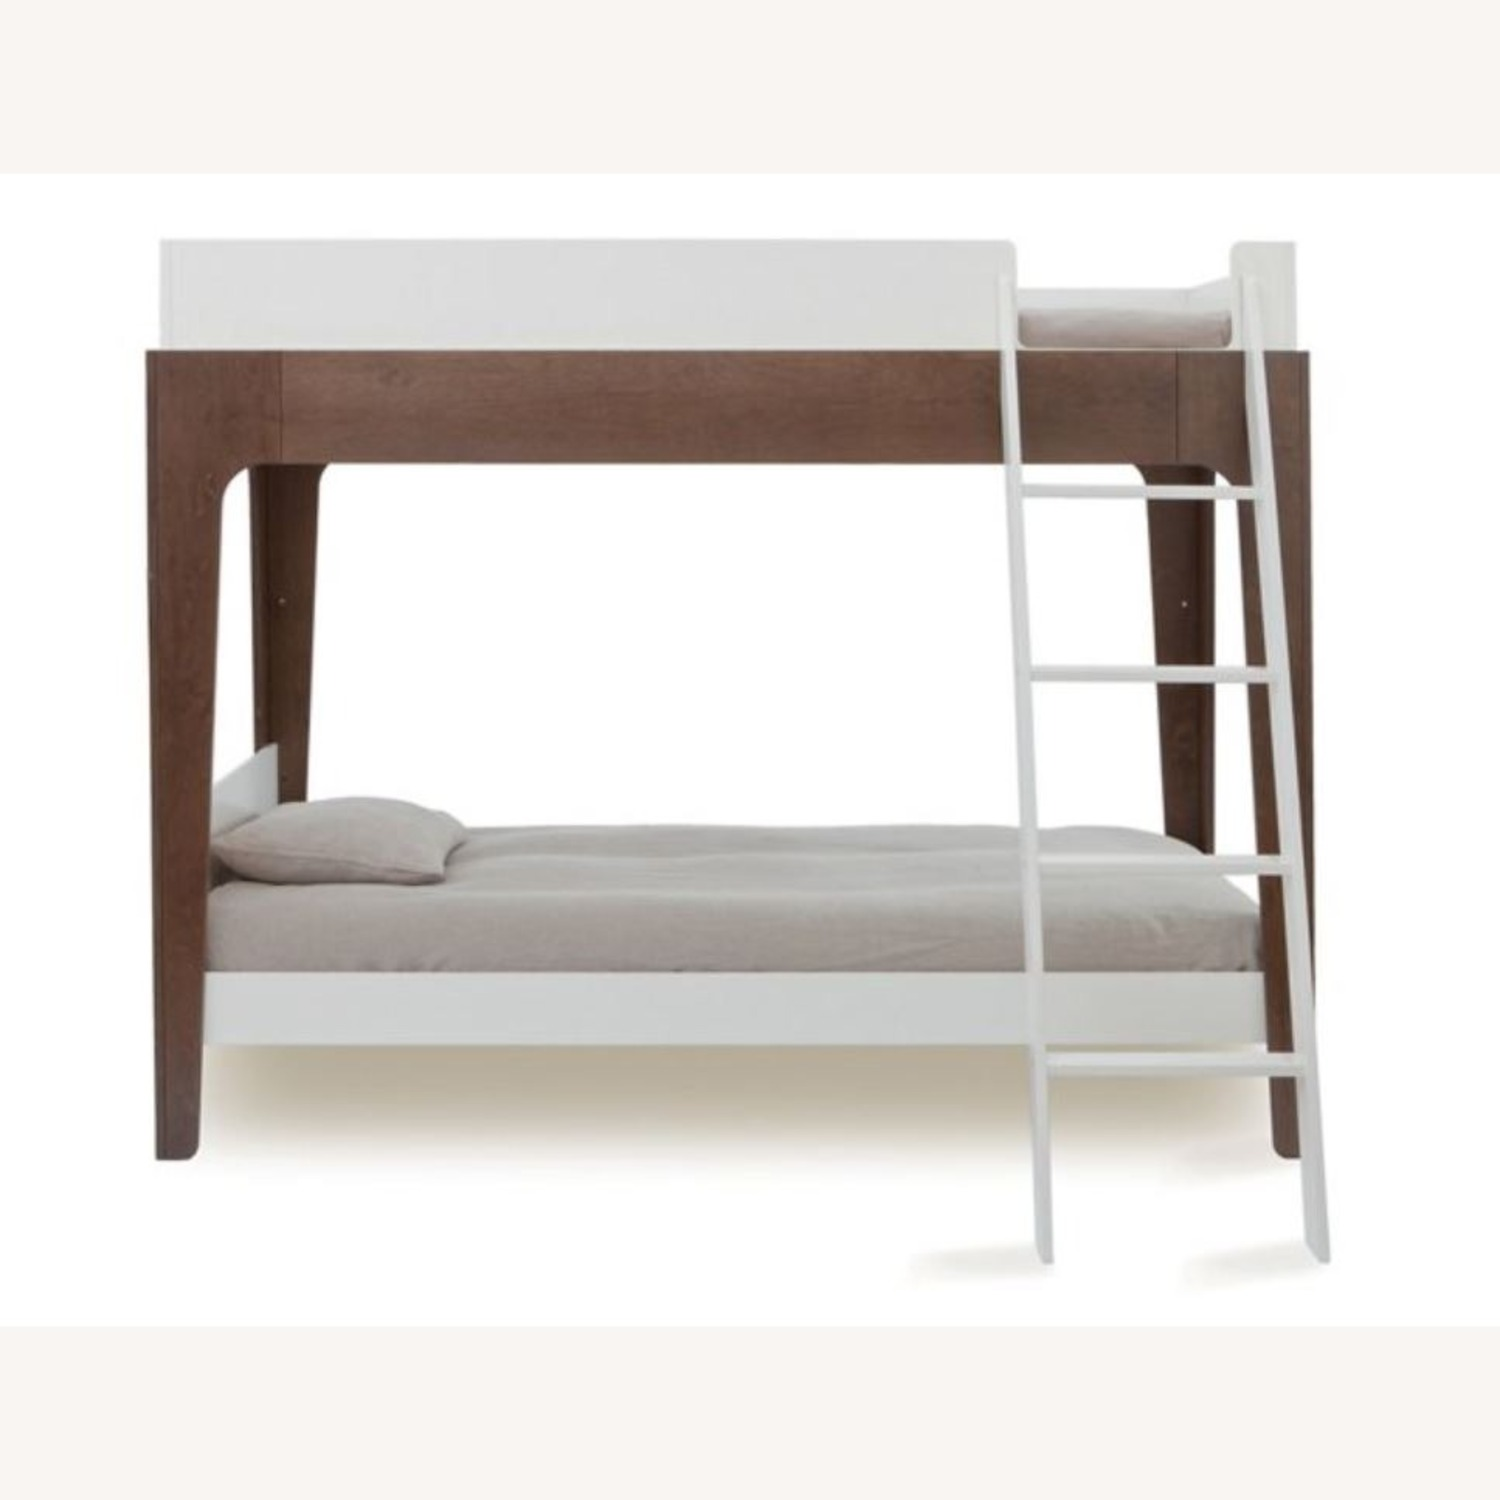 Oeuf Perch Bunk Bed - image-5